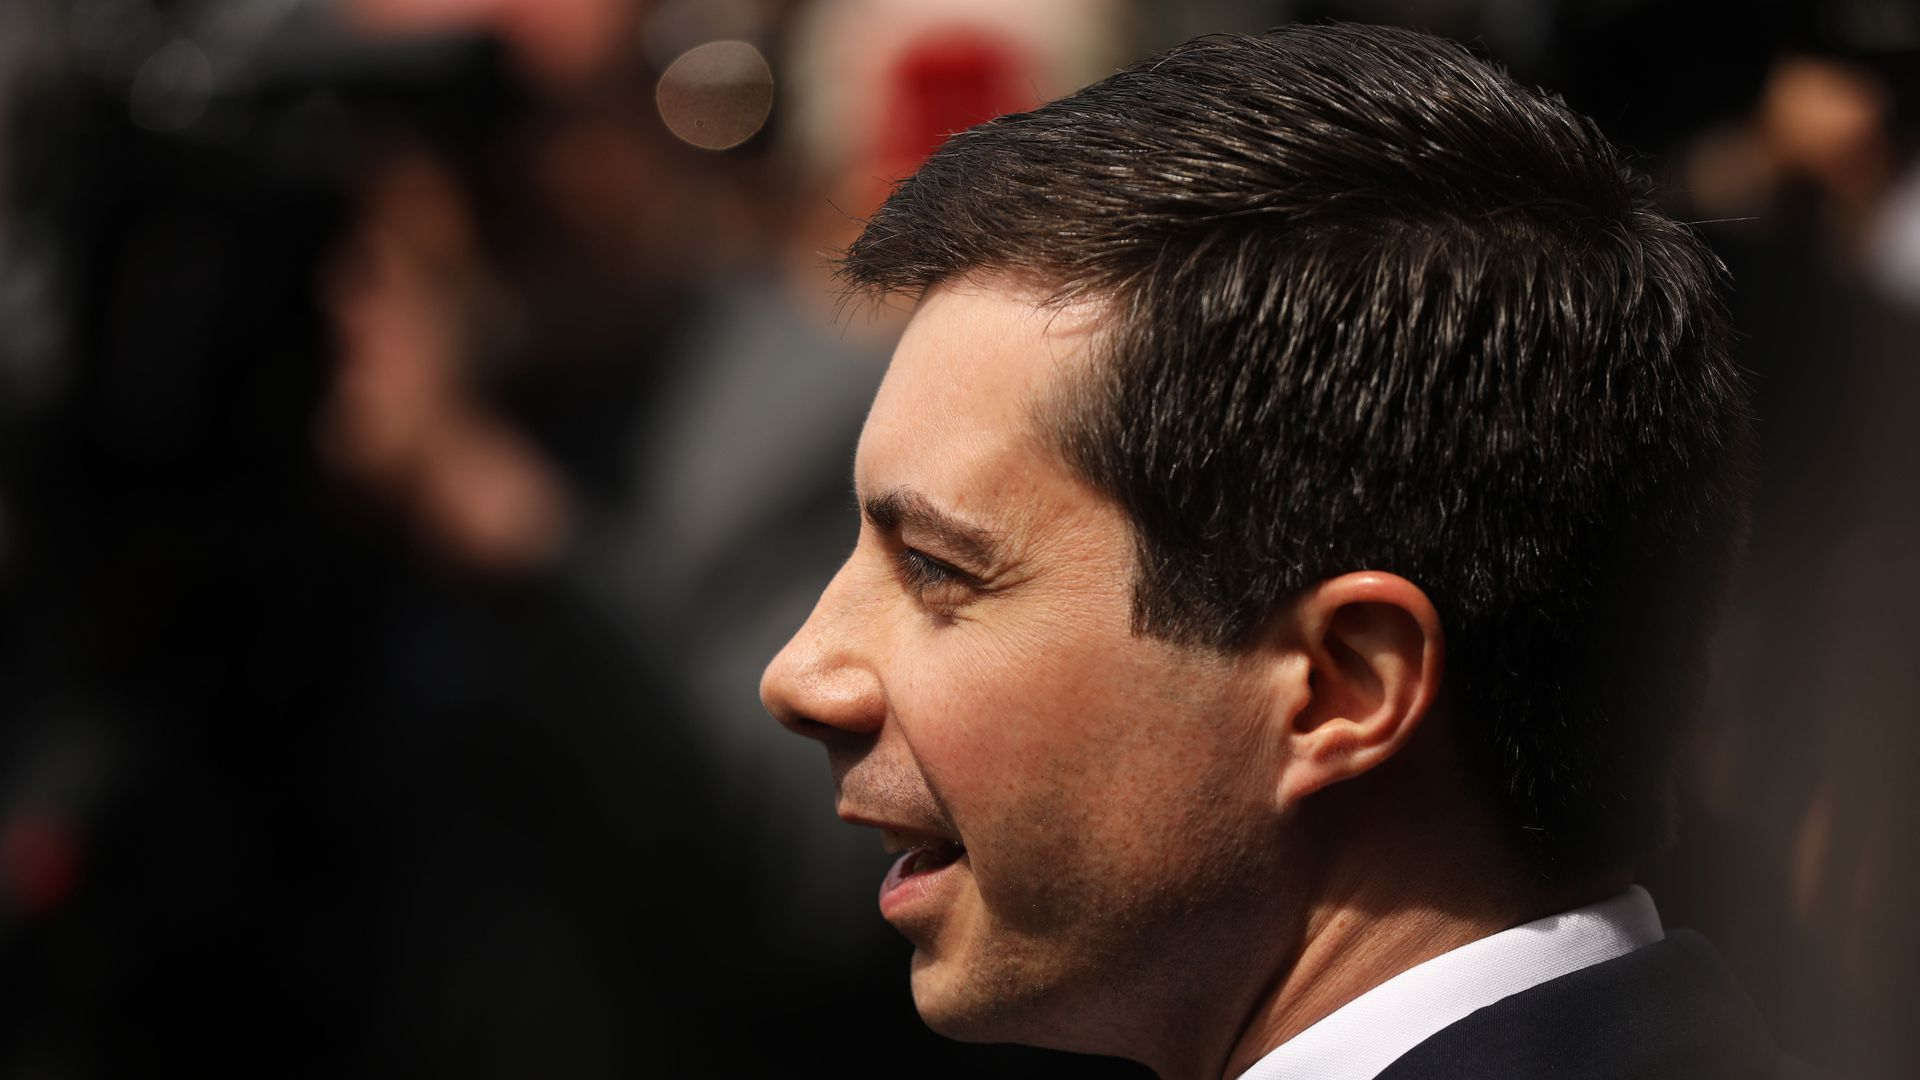 This image is a profile view of Pete Buttigieg, who stands and walks in a suit.